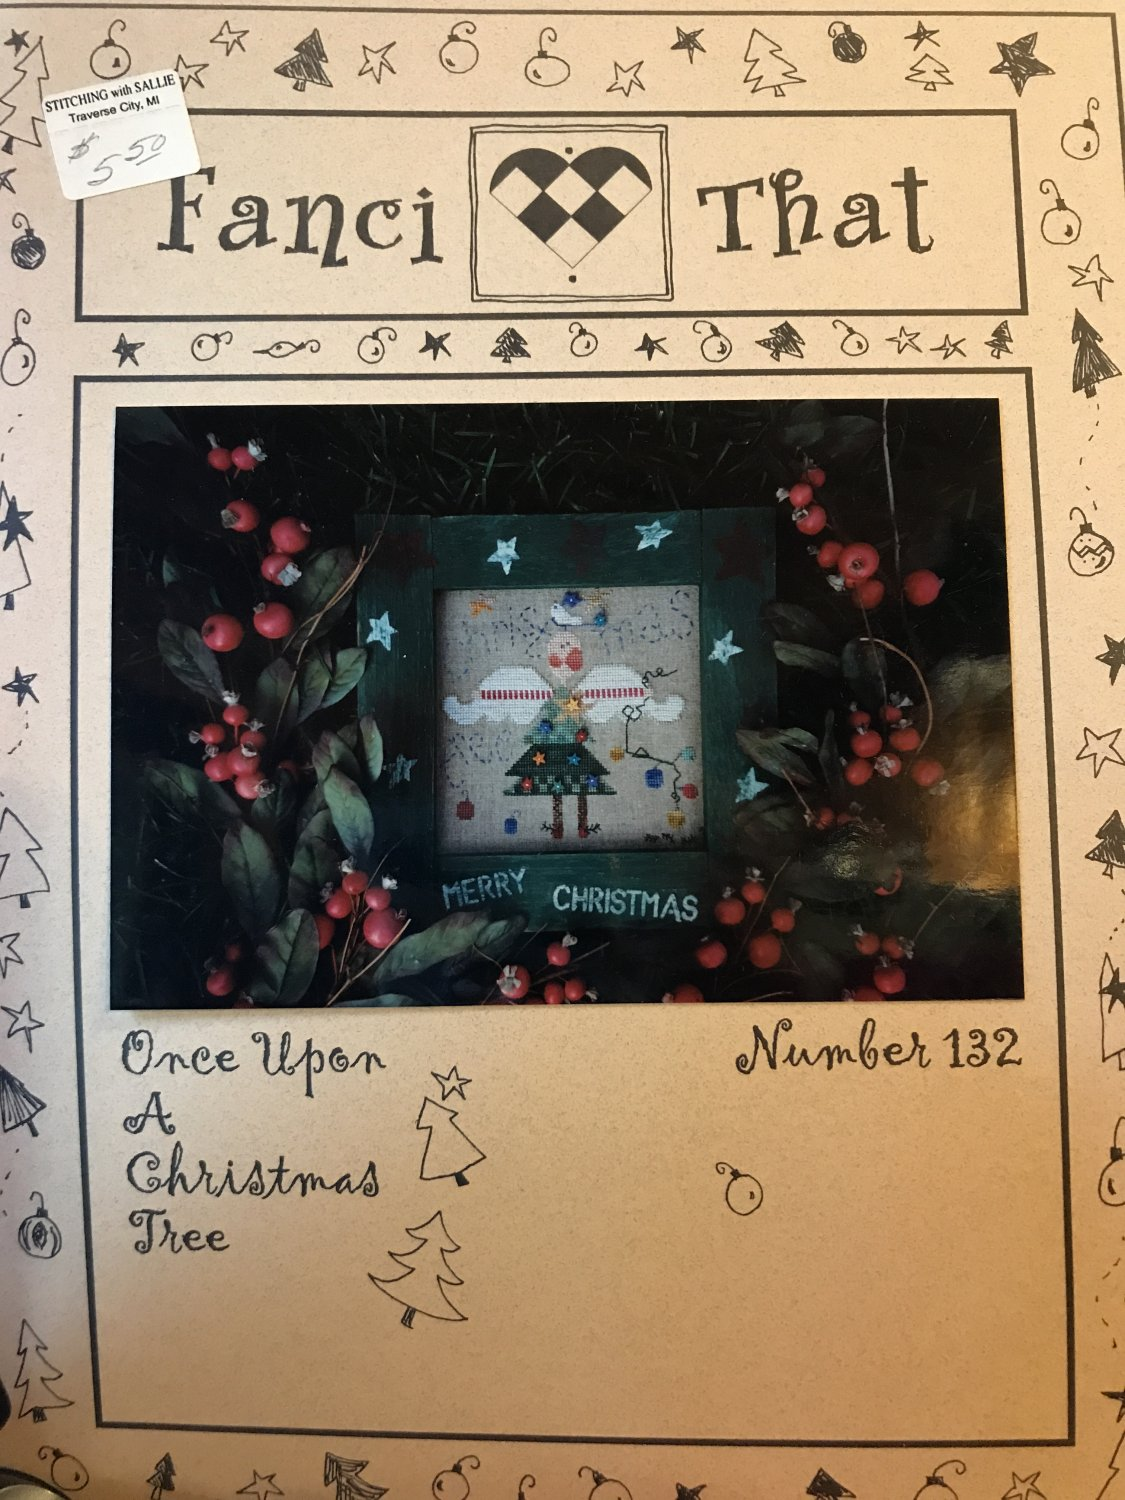 Fanci That Once Upon A Christmas Tree Counted Cross Stitch Pattern number 132